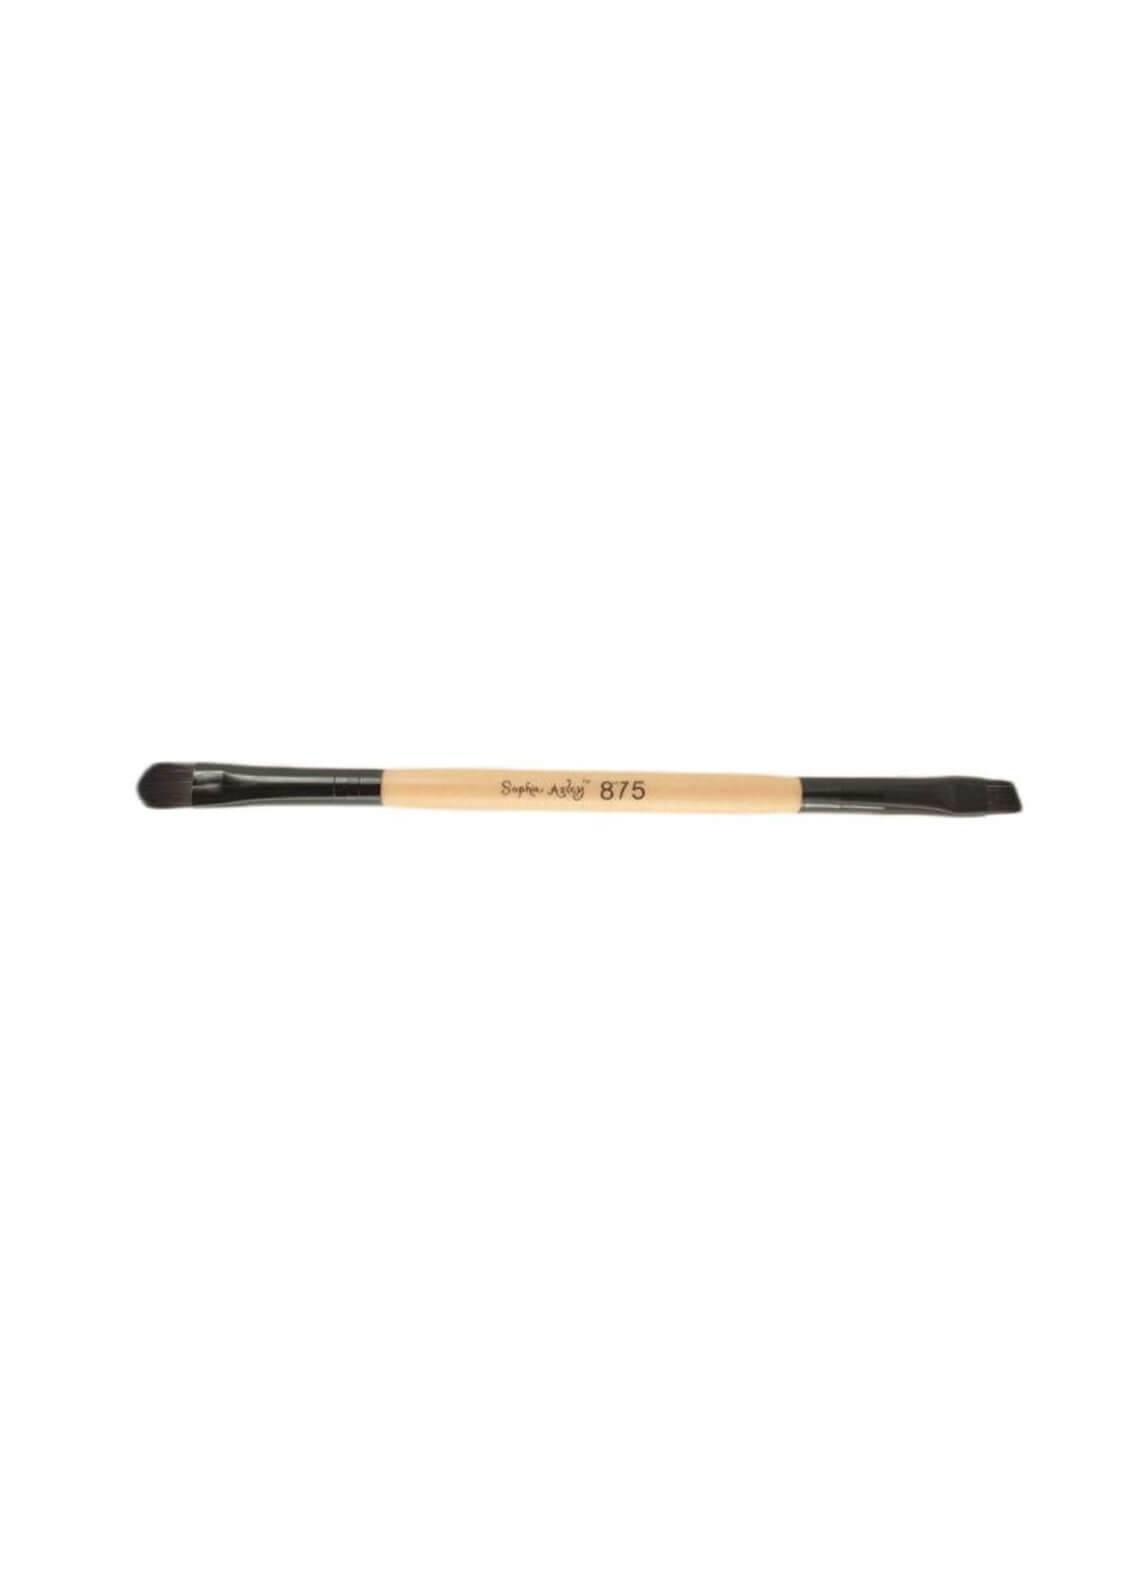 Sophia Asley Professional Wooden Double Sided Brush Applicator with Cut